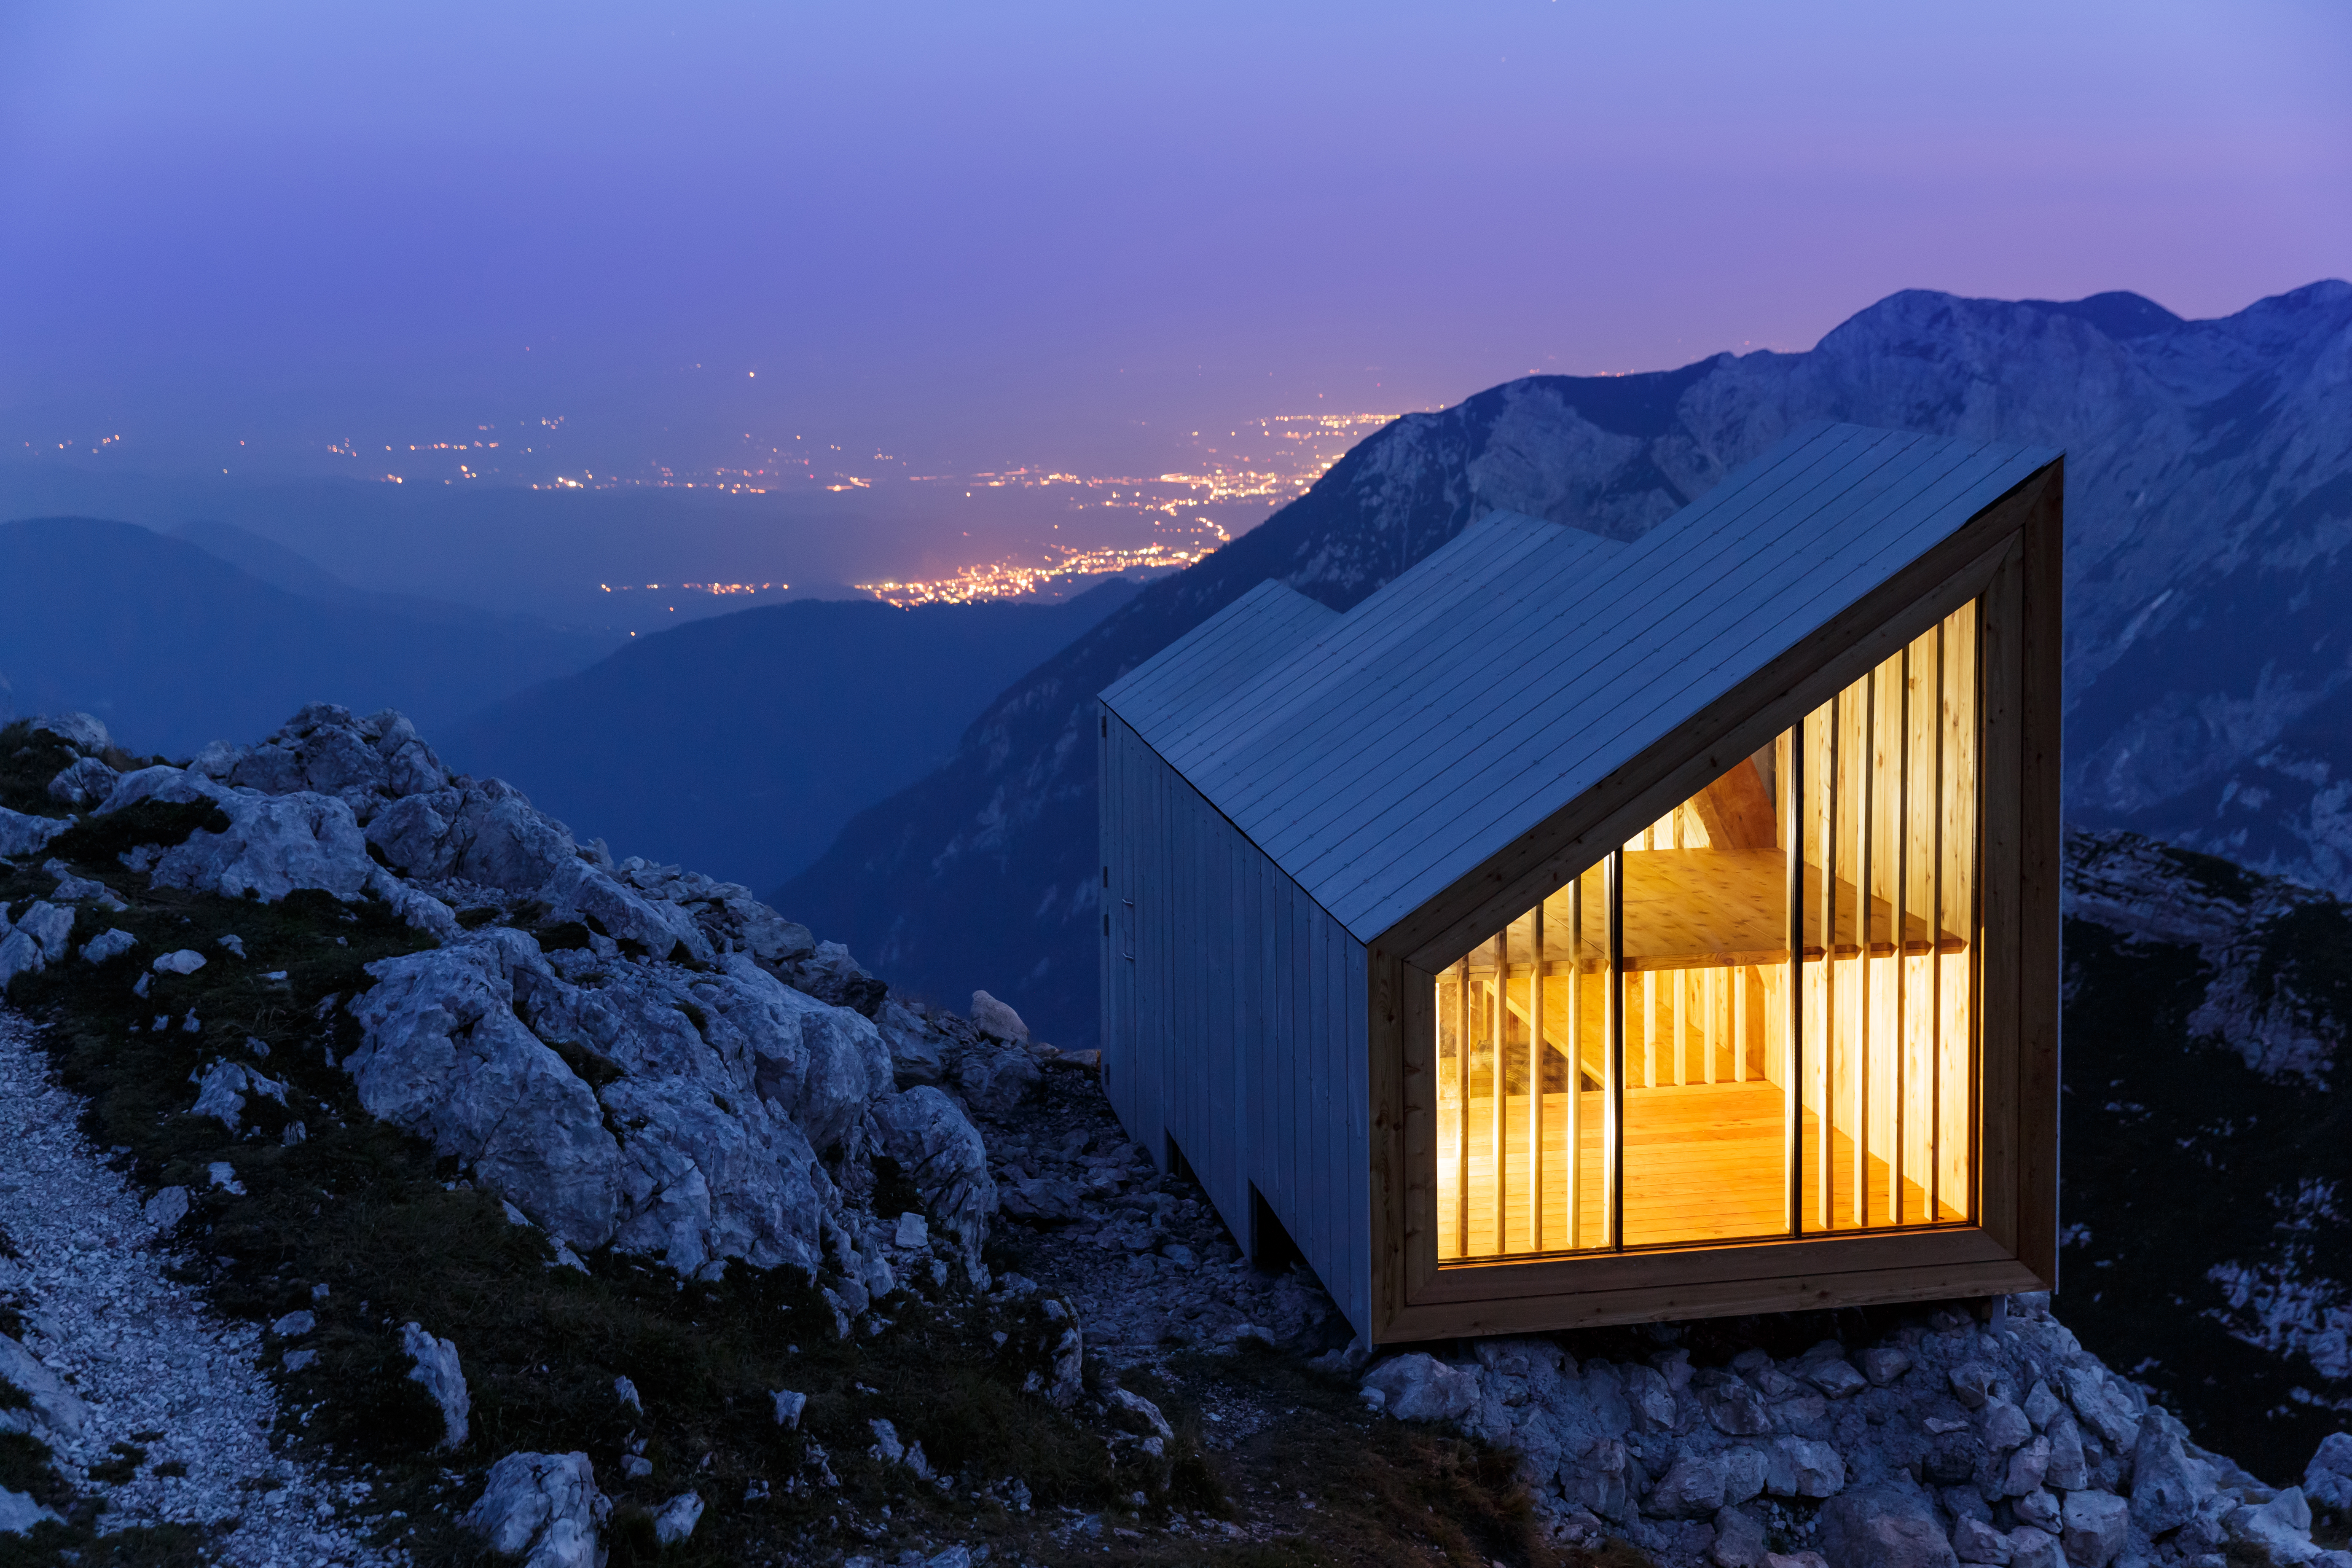 01_Slovenian-alps-cabin_AC_3503_MAY-ONLY-BE-USED-FOR-ANNUAL-REPORT-2015_COM.jpg